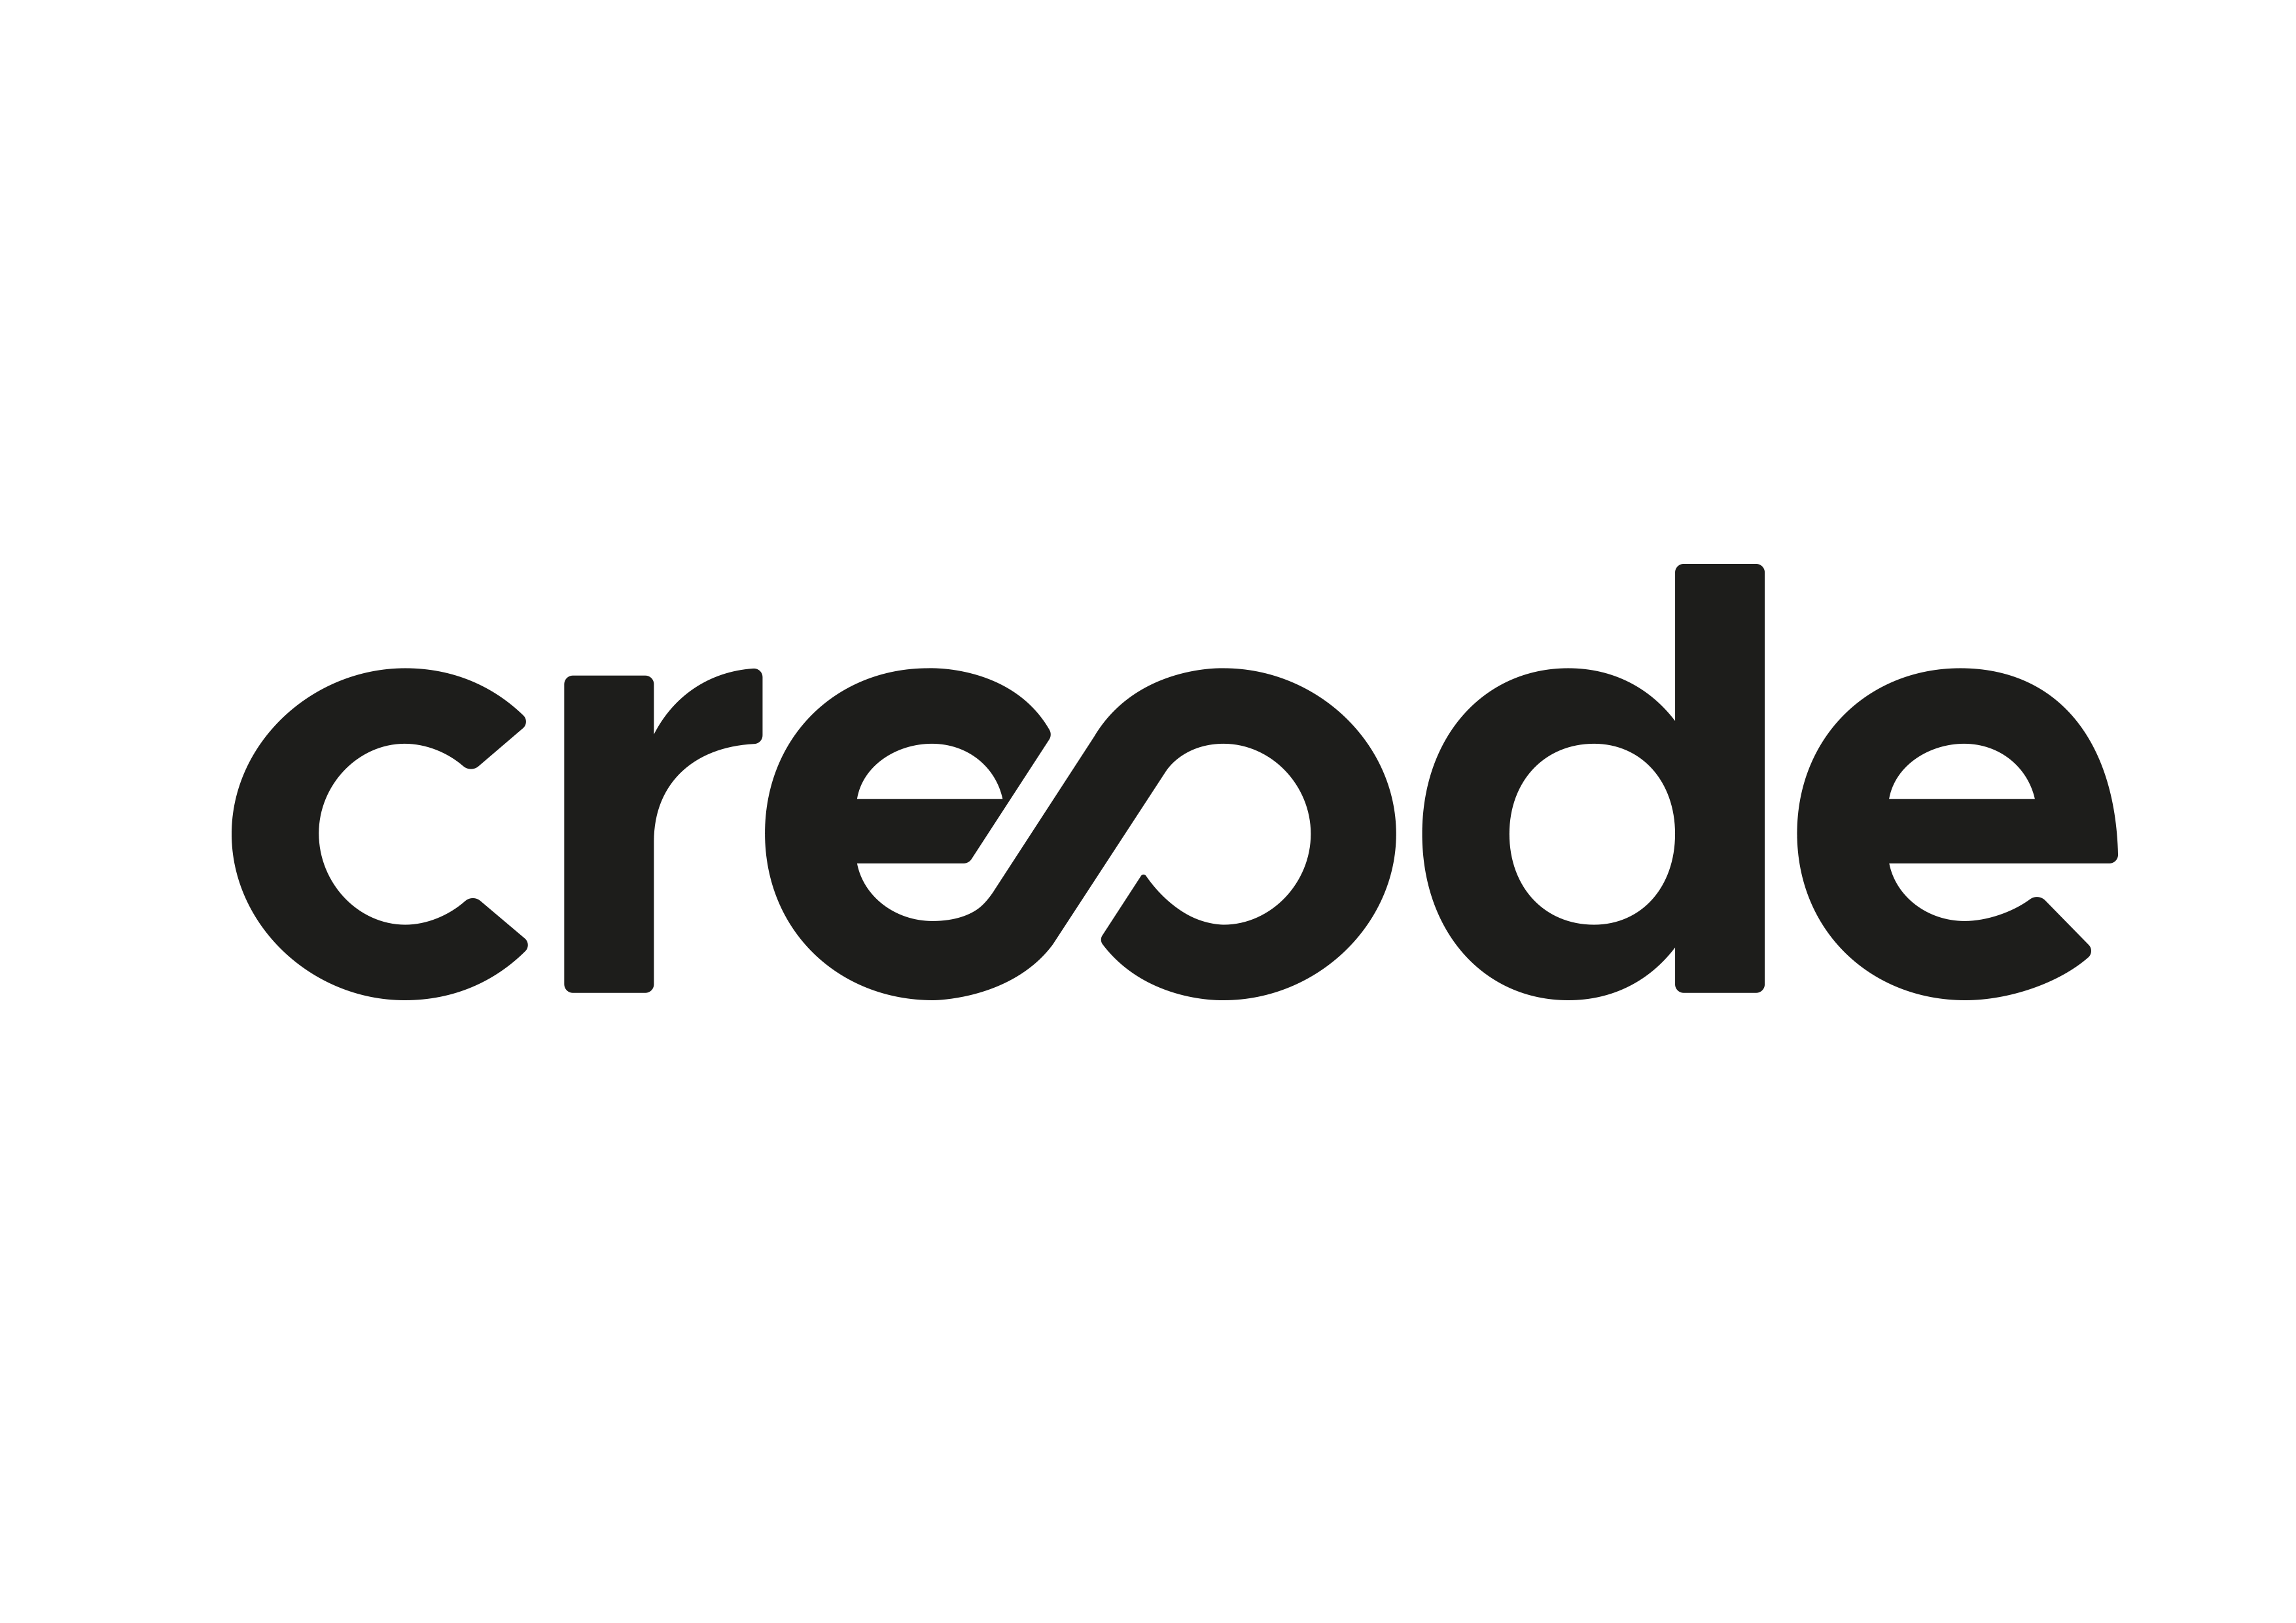 Creode Ltd. logo